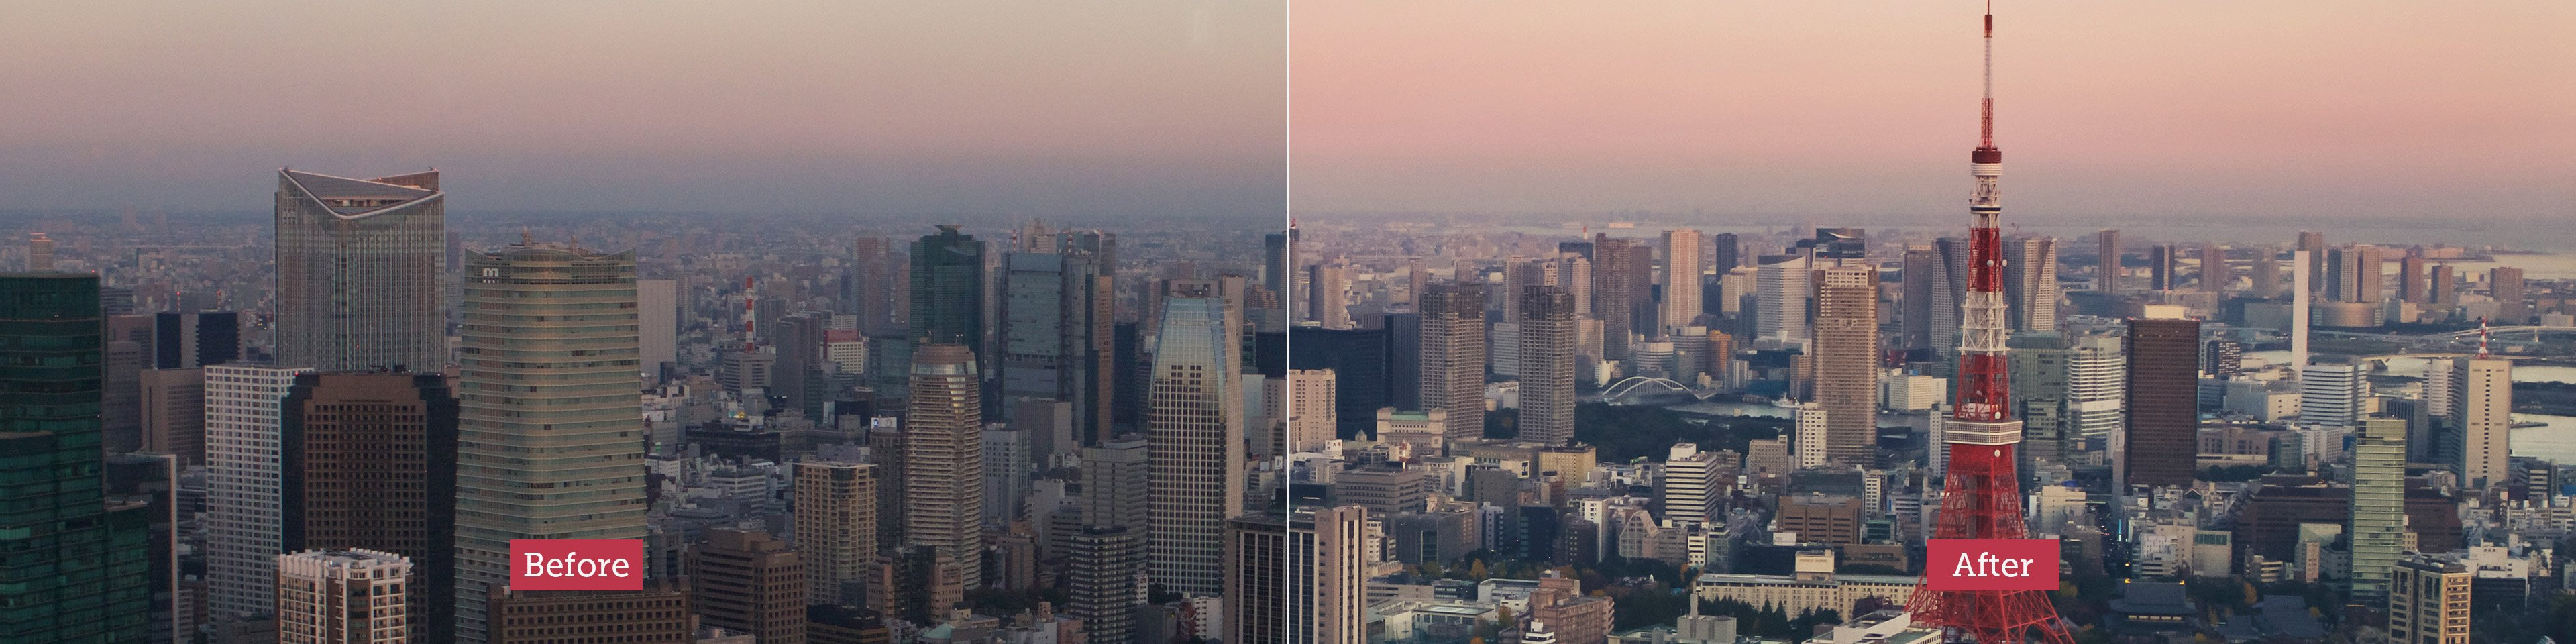 How I edit photos before and after